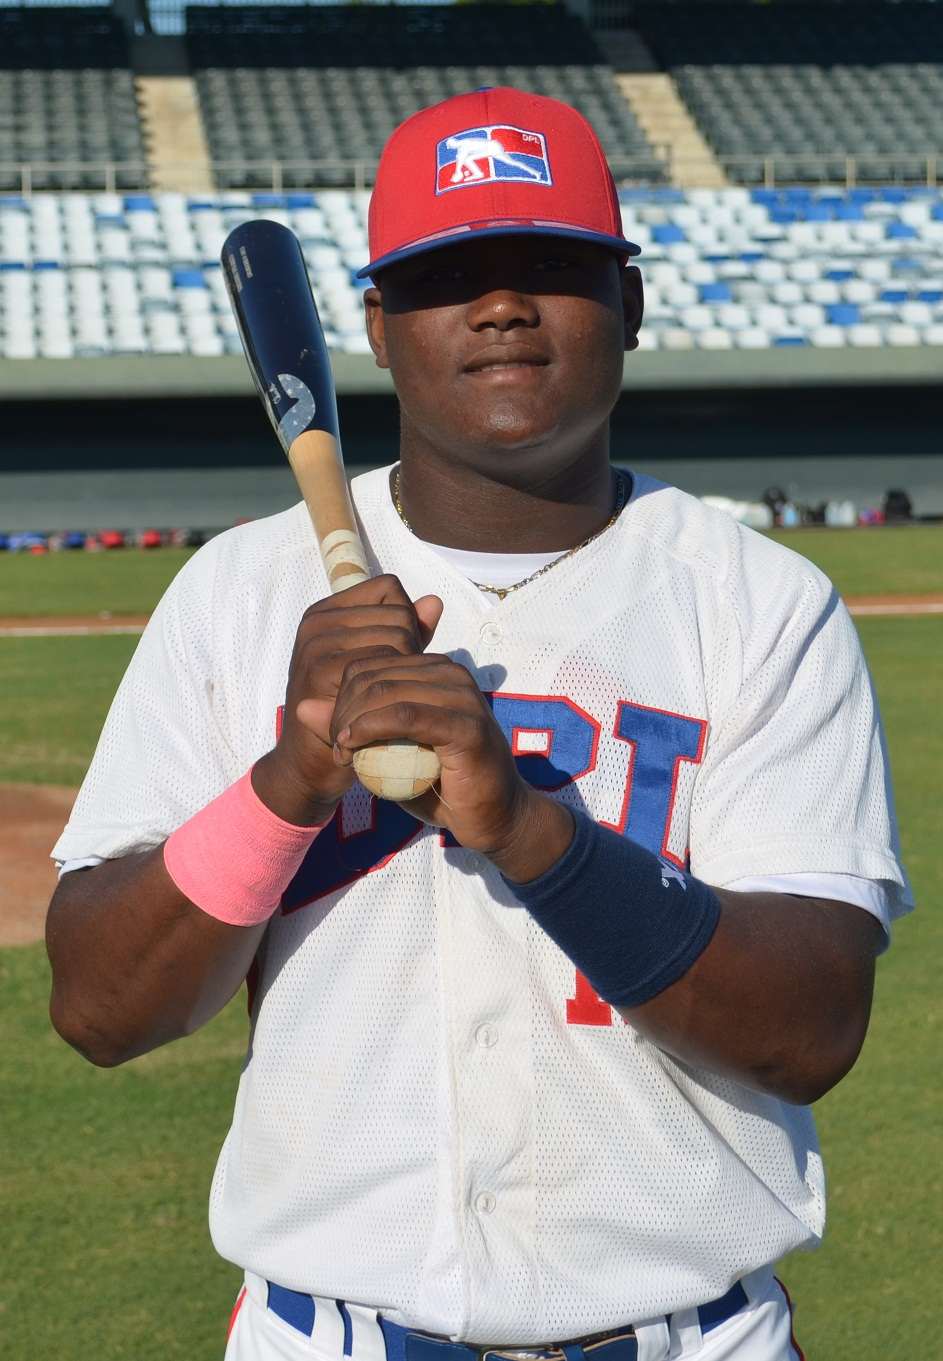 Josh Byrnes compared Starling Heredia, aka The Pitbull, to Kirby Puckett in body size.